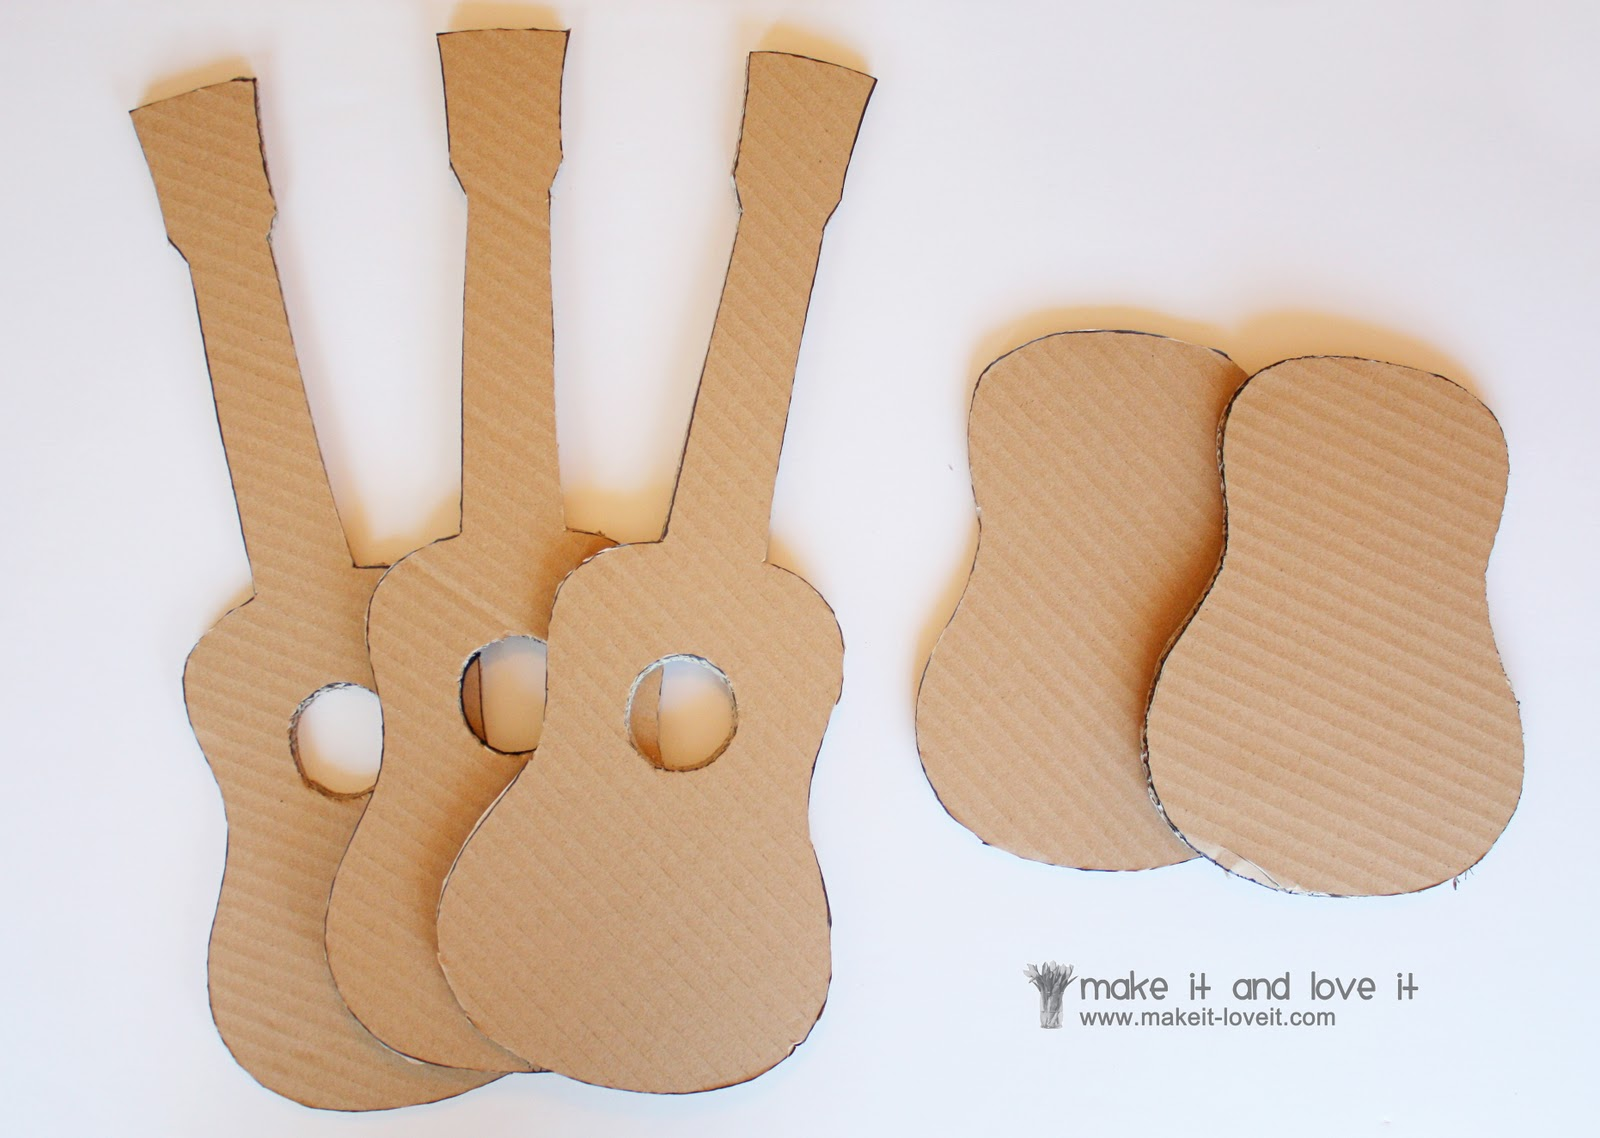 The Mister Make It And Love It Series Cardboard Guitars Make It